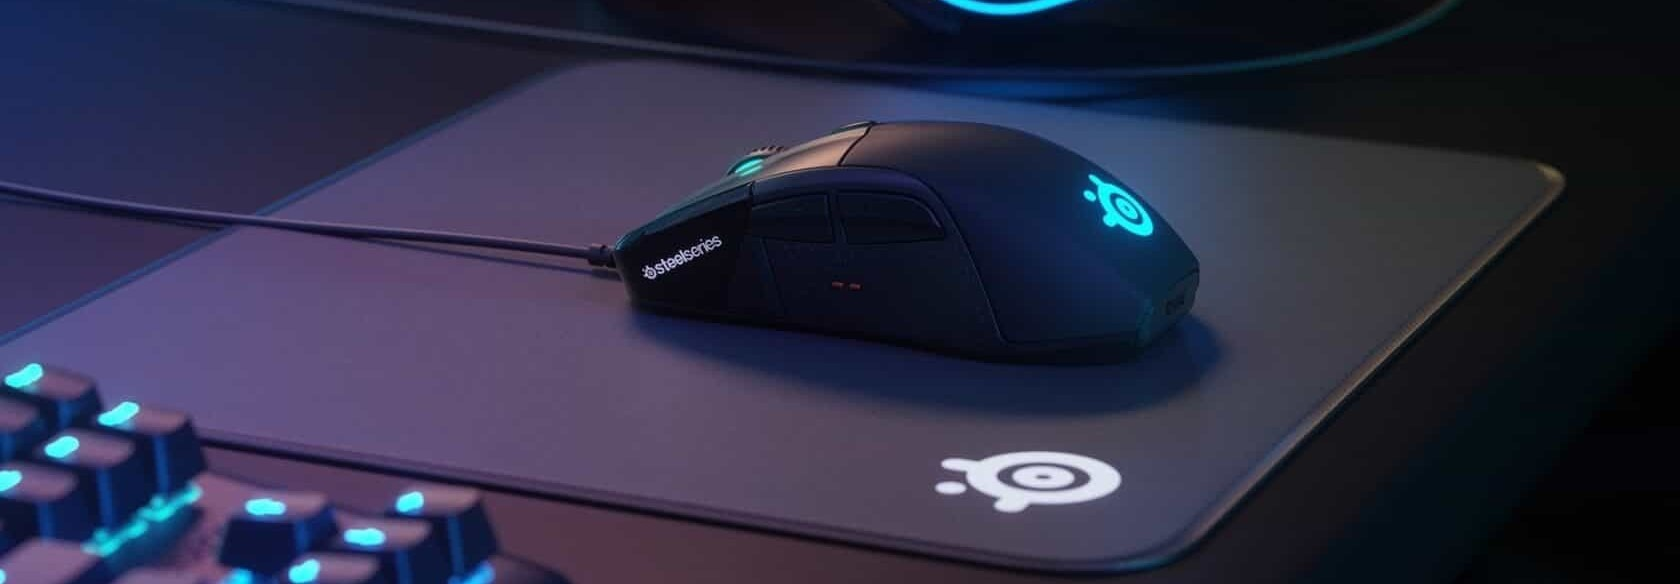 logitech gaming mouse on logitech mouse pad